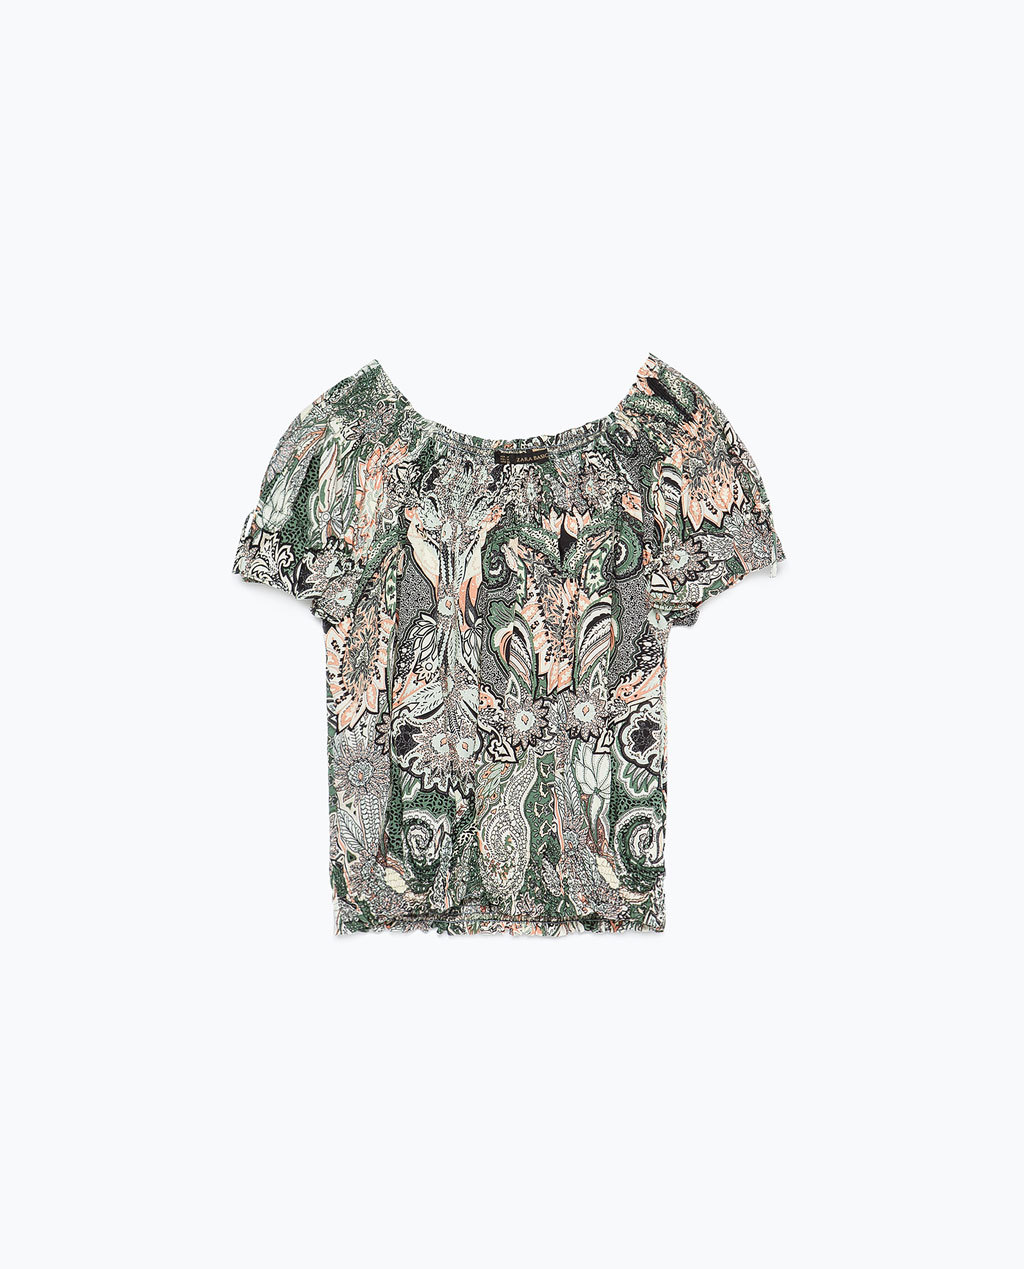 Printed Top - neckline: off the shoulder; secondary colour: white; predominant colour: mid grey; occasions: casual; length: standard; style: top; fibres: viscose/rayon - 100%; fit: loose; sleeve length: short sleeve; sleeve style: standard; pattern type: fabric; pattern: patterned/print; texture group: other - light to midweight; season: s/s 2015; multicoloured: multicoloured; wardrobe: highlight